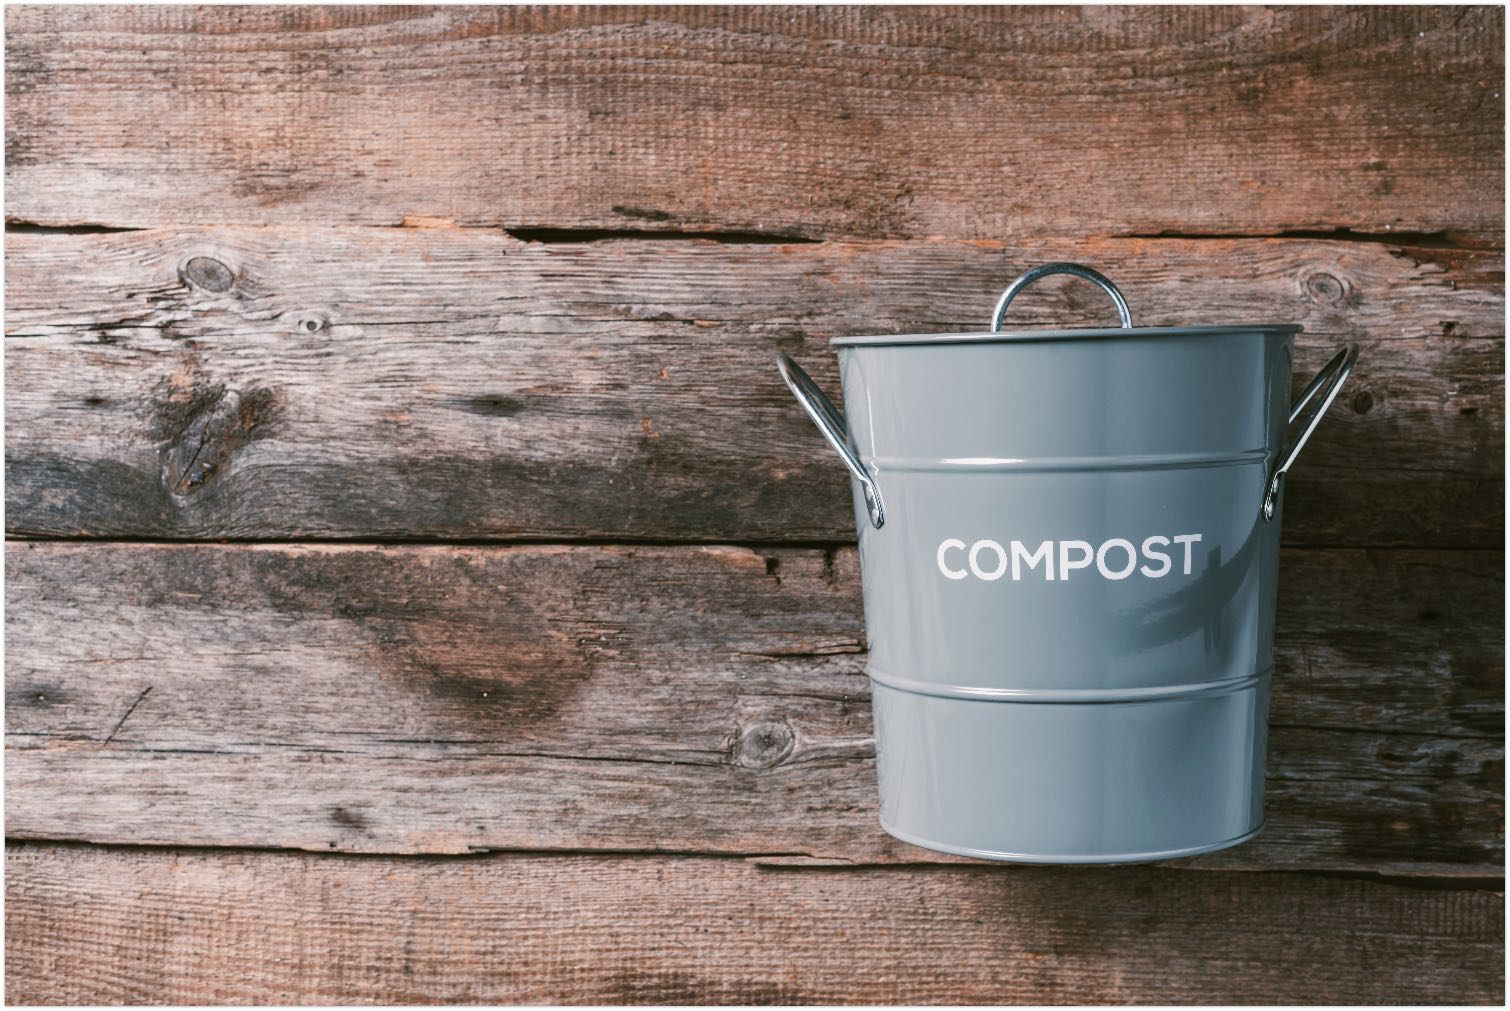 Recycling food waste bin for compost